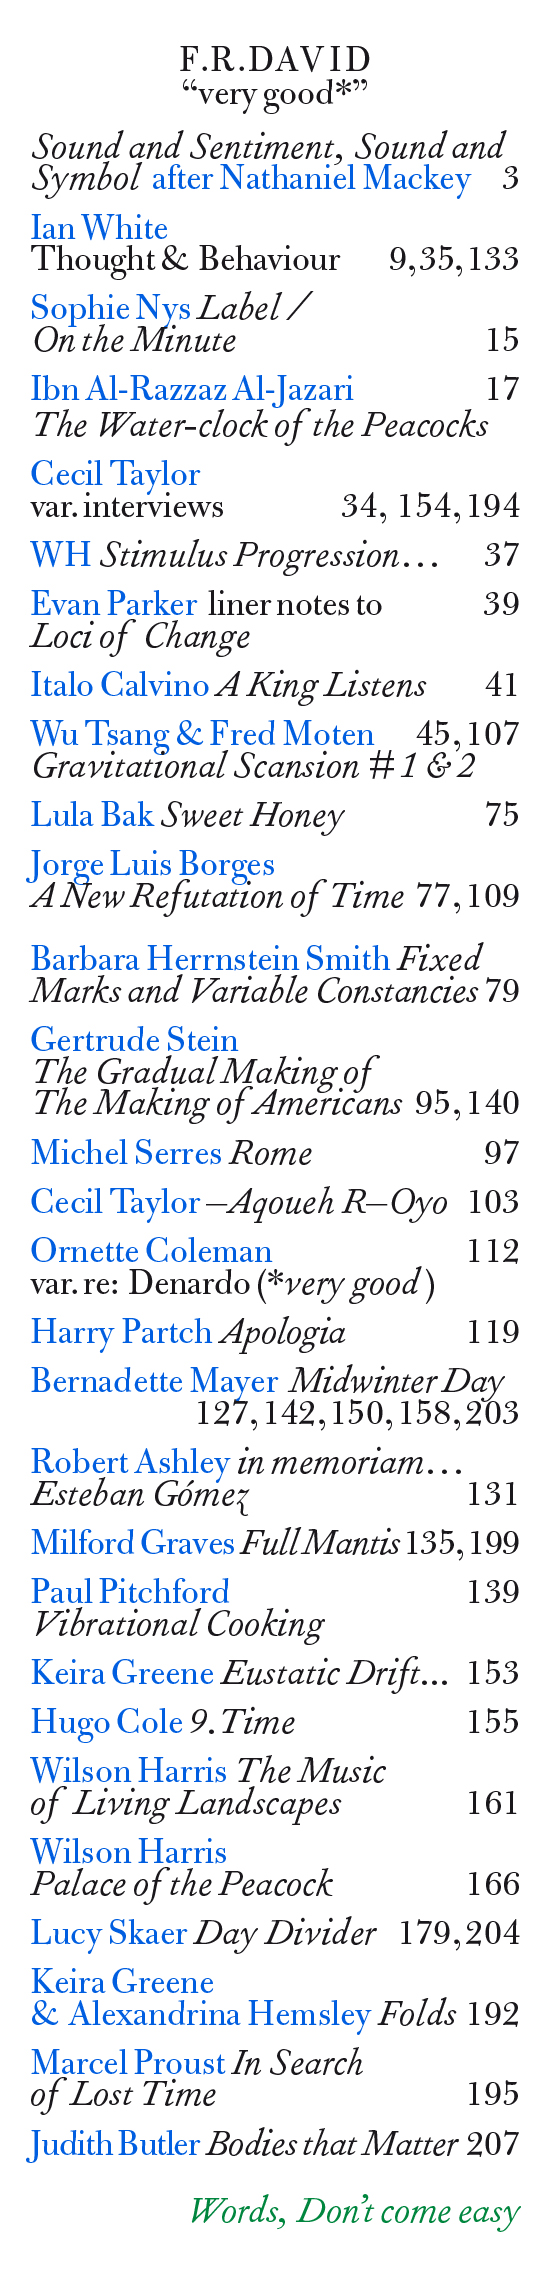 "<p>F.R.DAVID, Index of the 19th issue<em> ""very good*""</em>, 2020</p>"